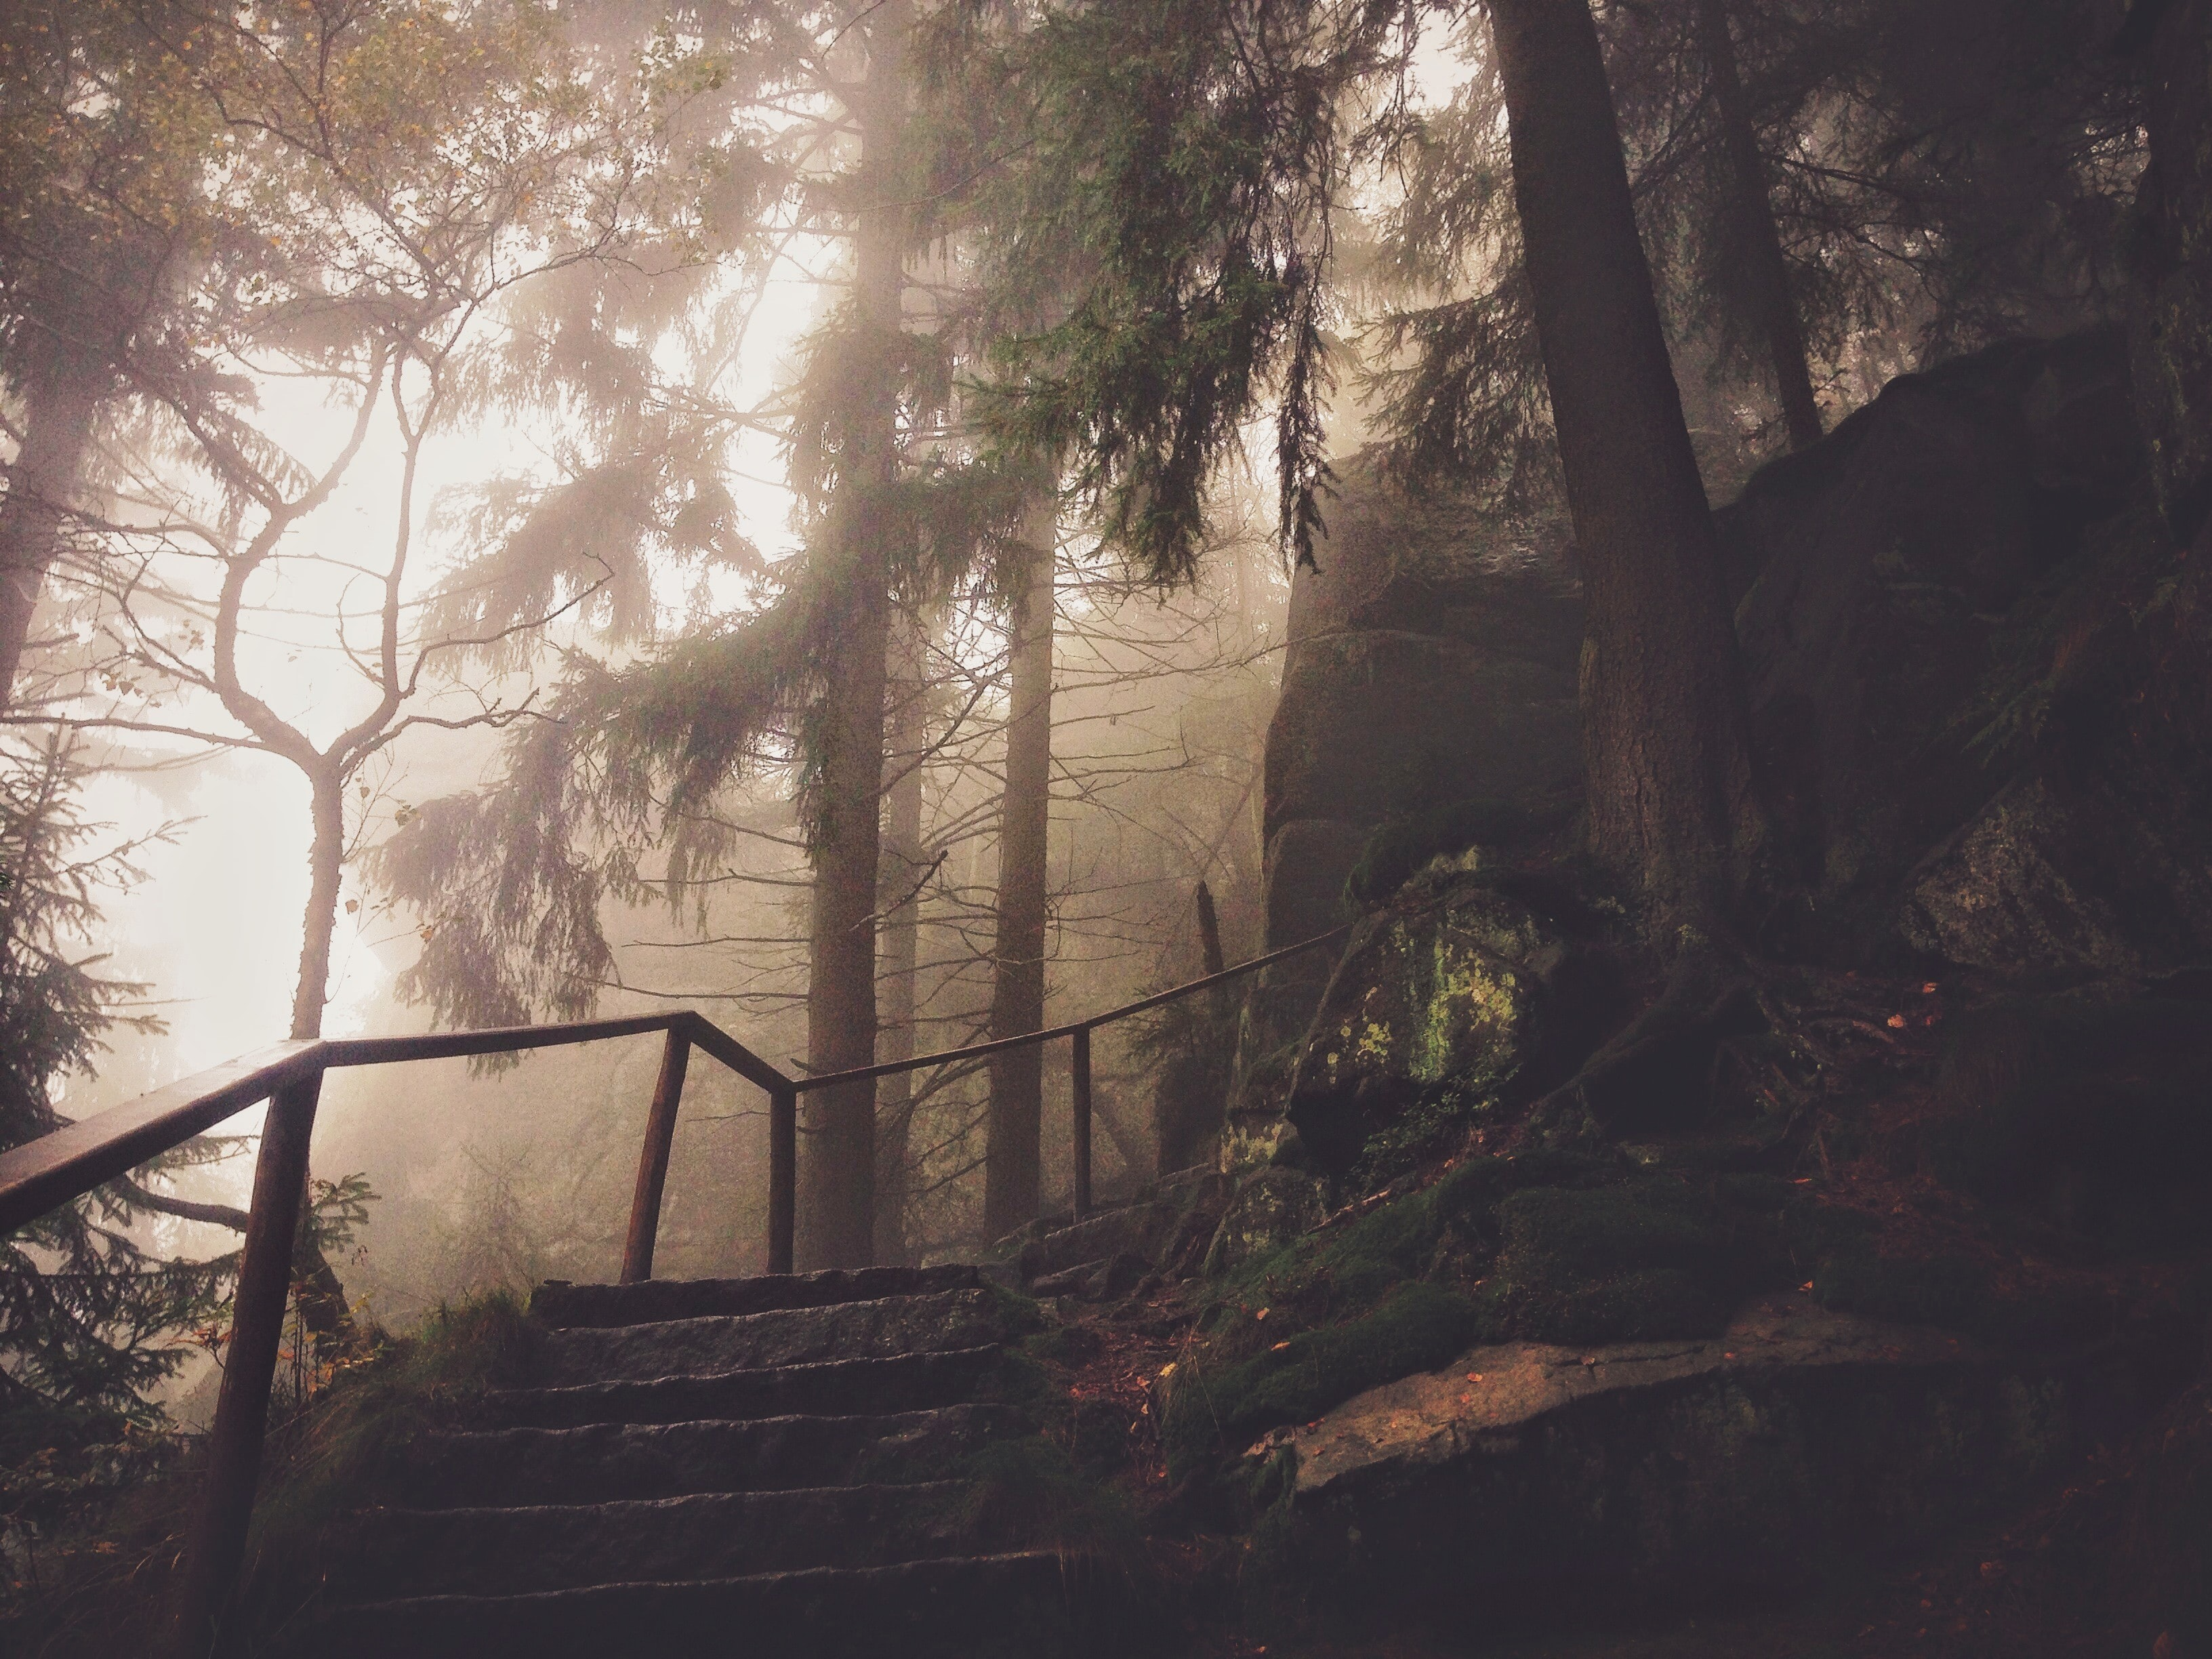 Stone stairs with a railing in a foggy forest